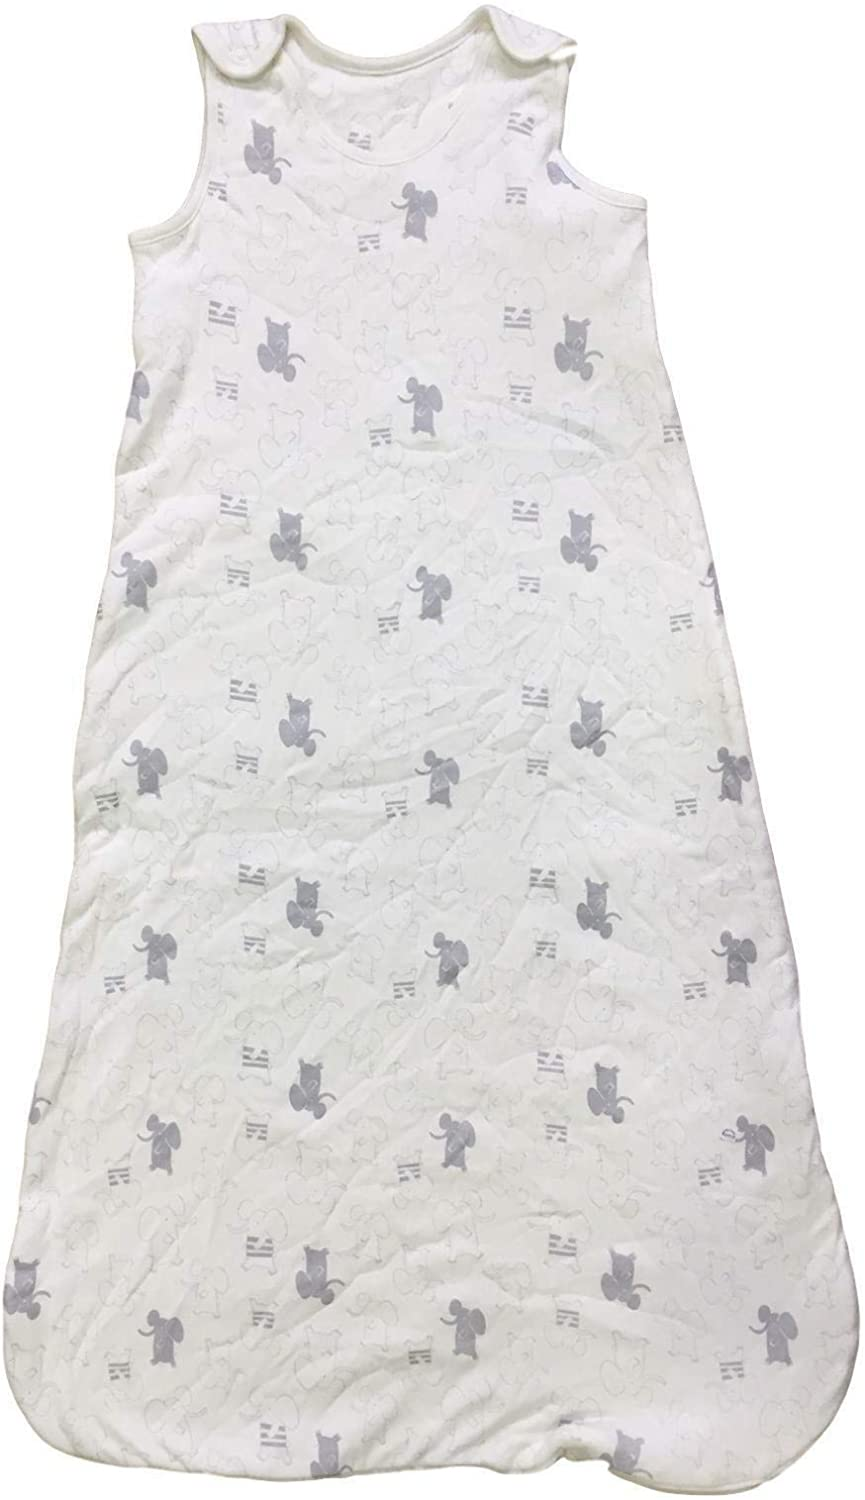 Paradise Baby Sleeping Bag EX Marks /& Spencer Boys Girls Cotton 0-36M TOG 1.2-2.4 New